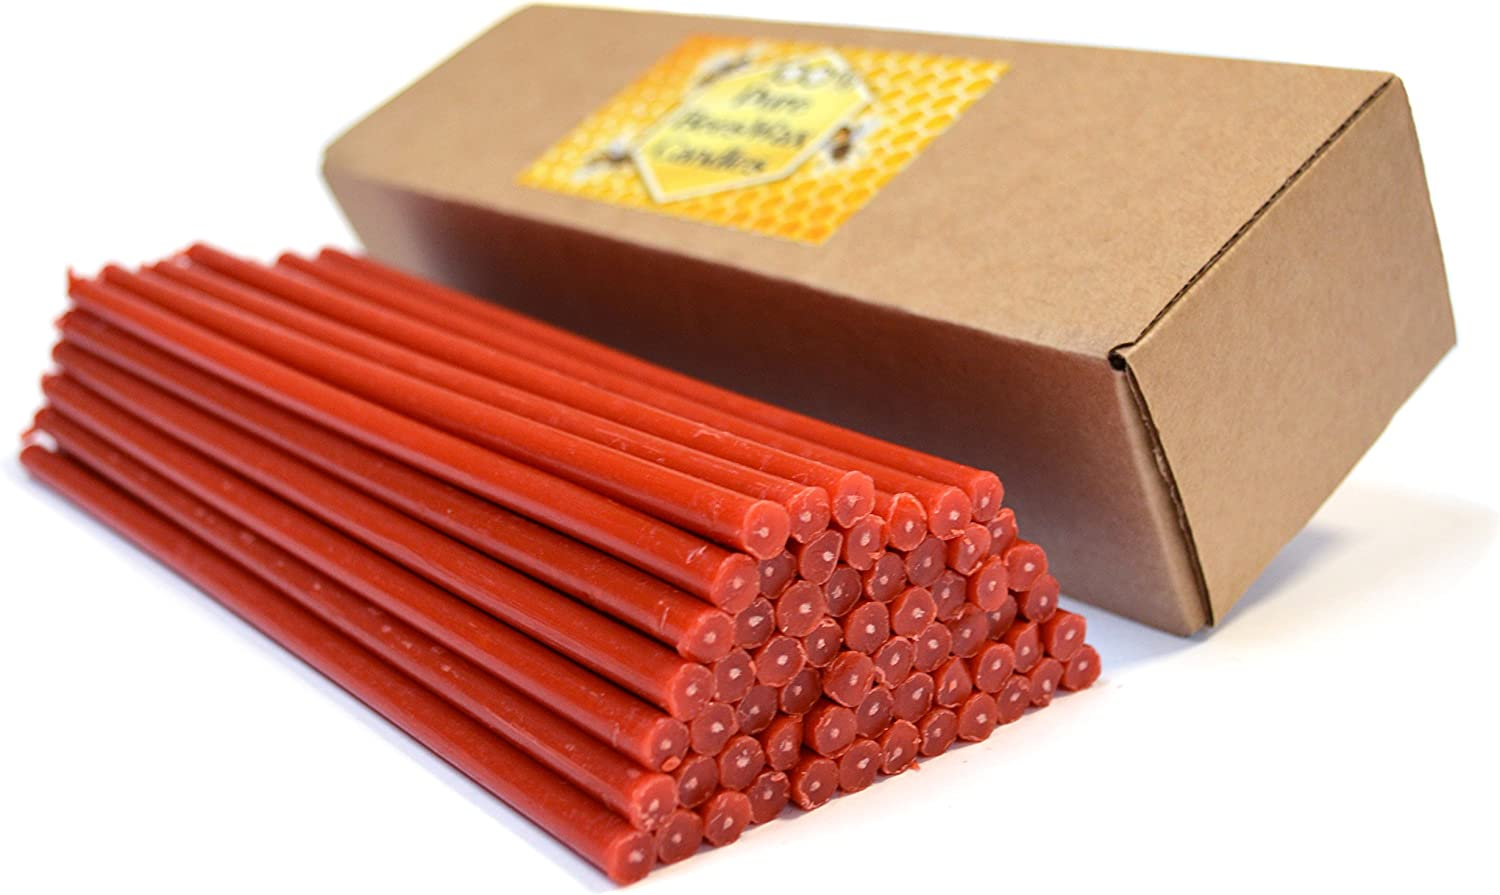 Natural Pure Beeswax Candles Organic Honey Eco Candles Amber Red Color in Gift Box (Natural Cotton Wicks, Dripless, Smokeless, Not Taper Candles) (Red, 8 Inches (20 cm) 60pcs)